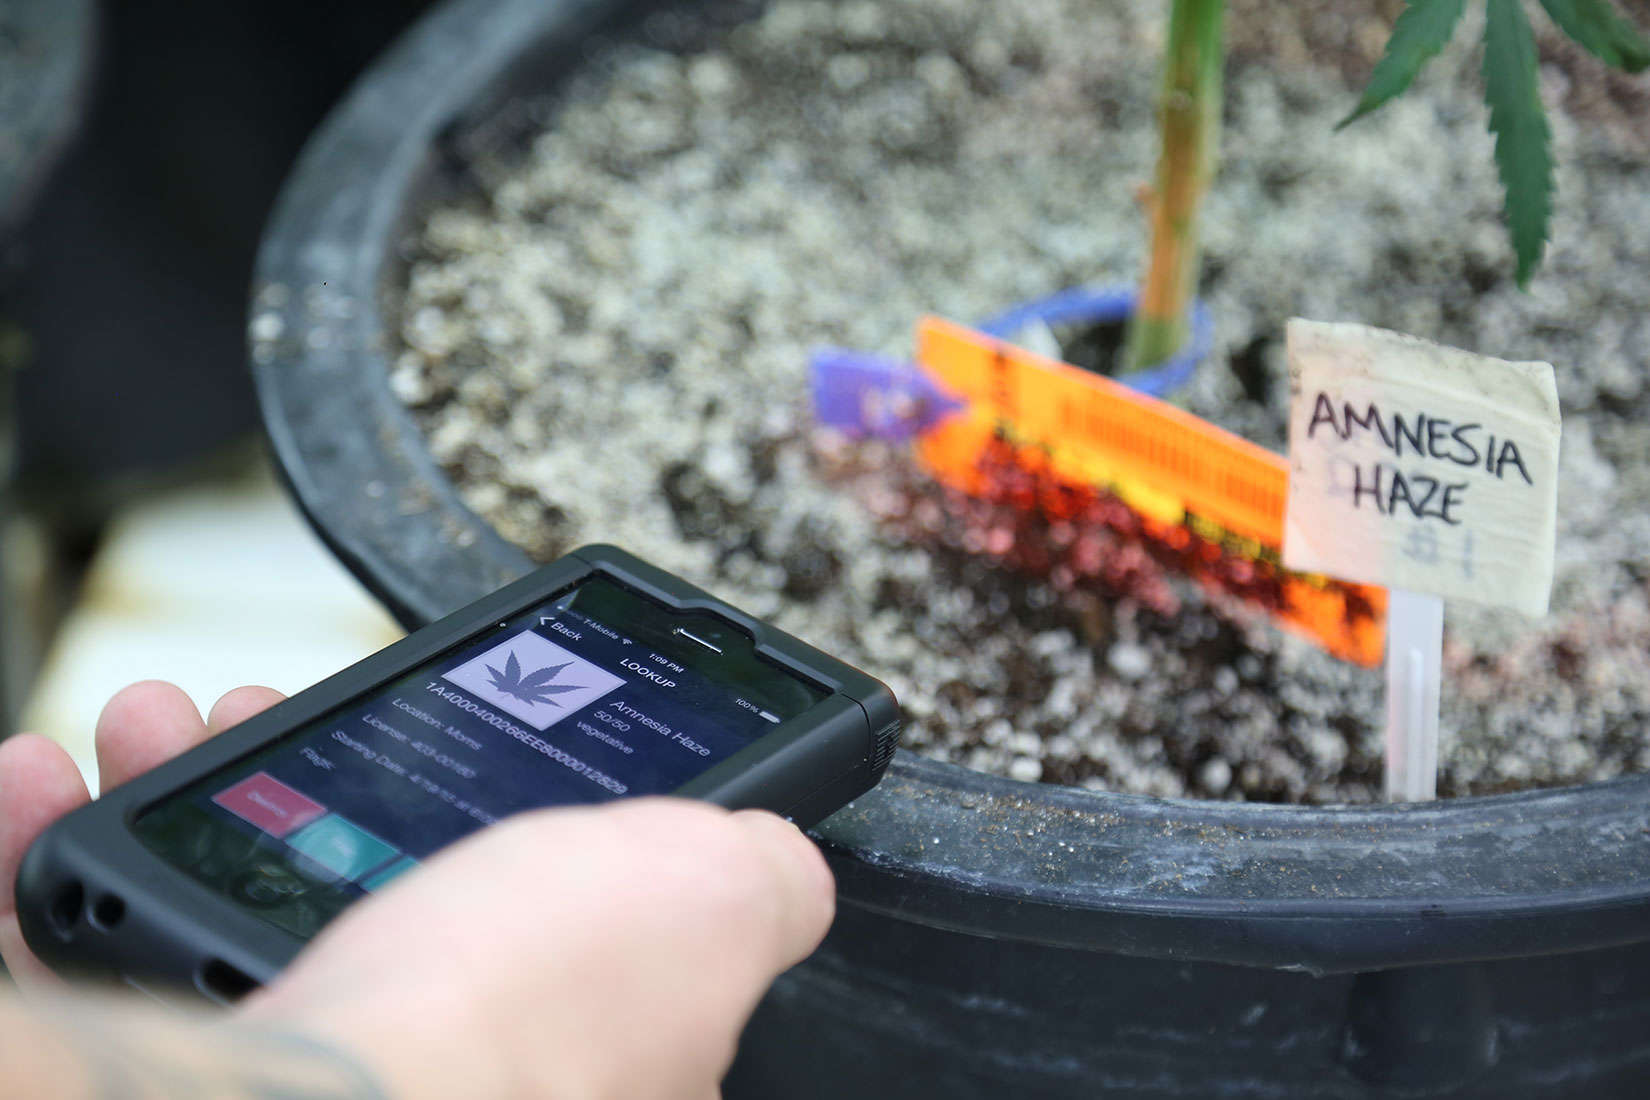 iPhone scanners are helping legal cannabis growers track product and stay compliant with state regulations.